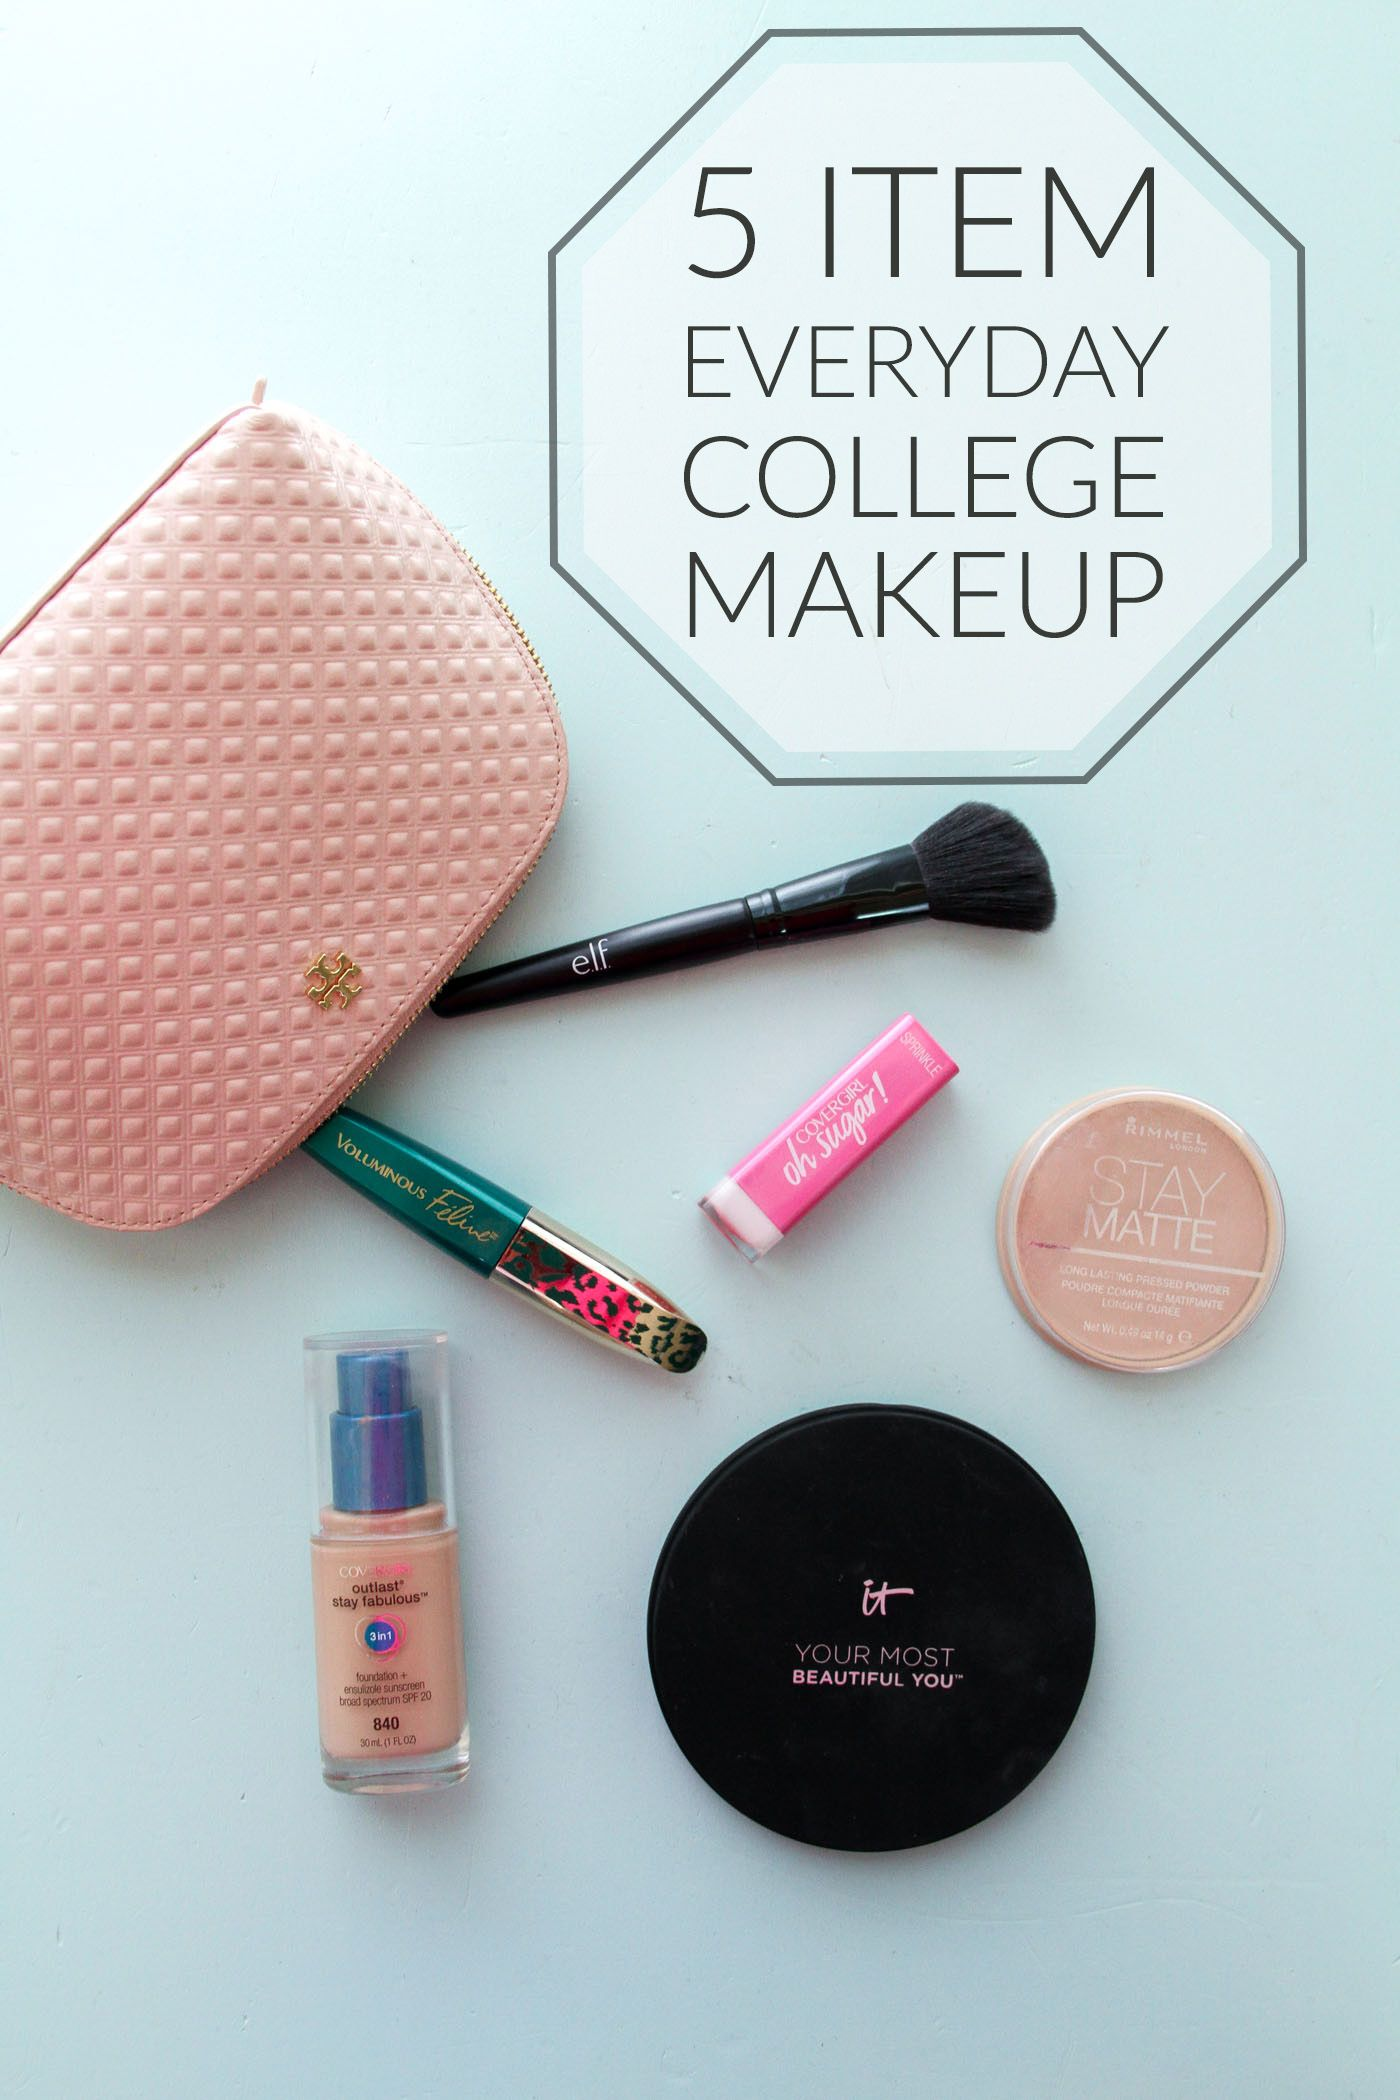 17 college makeup Everyday ideas